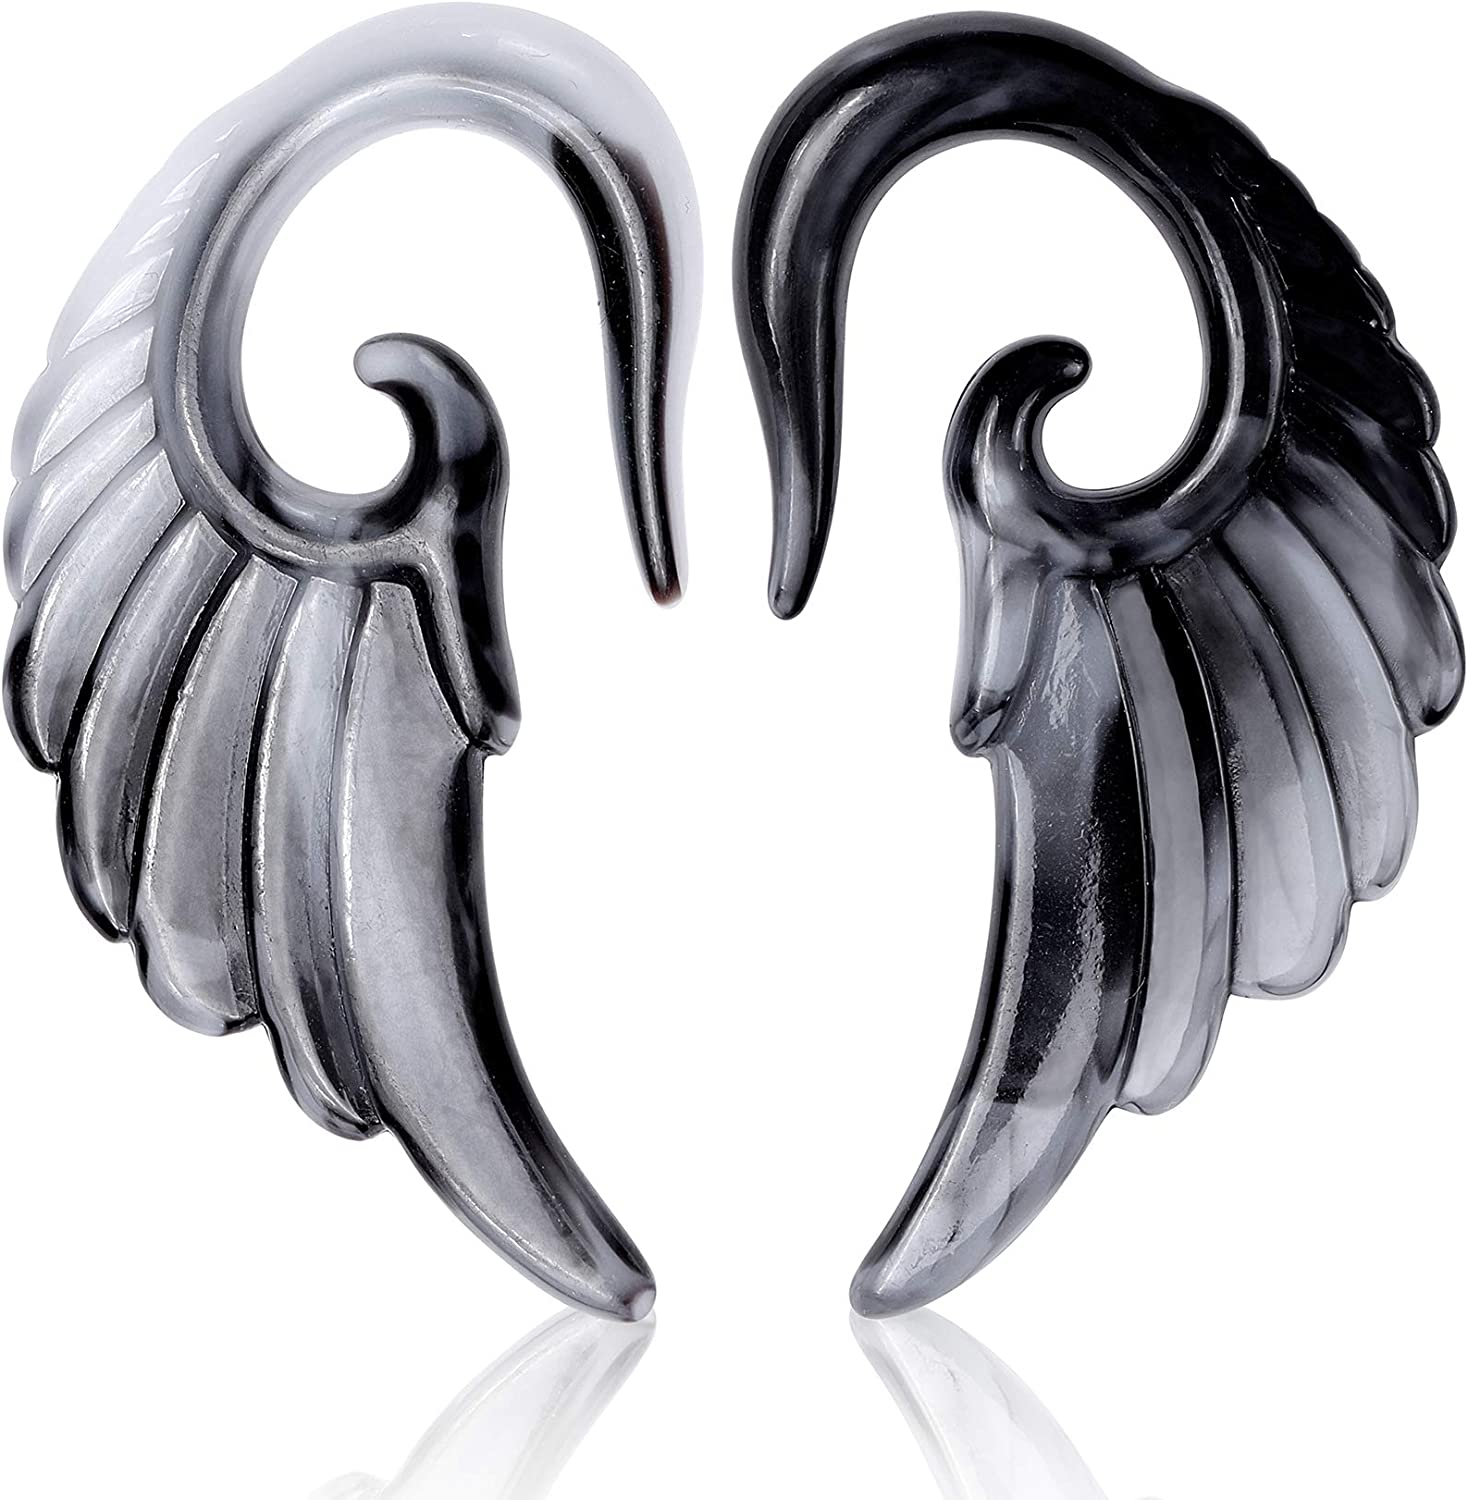 UJstyle 6 Pcs Ear Stretching Kit Spiral Acrylic Tapers Angel Wings Plugs Gauges Expander Body Piecing Jewelry 6G-1//2(4mm)